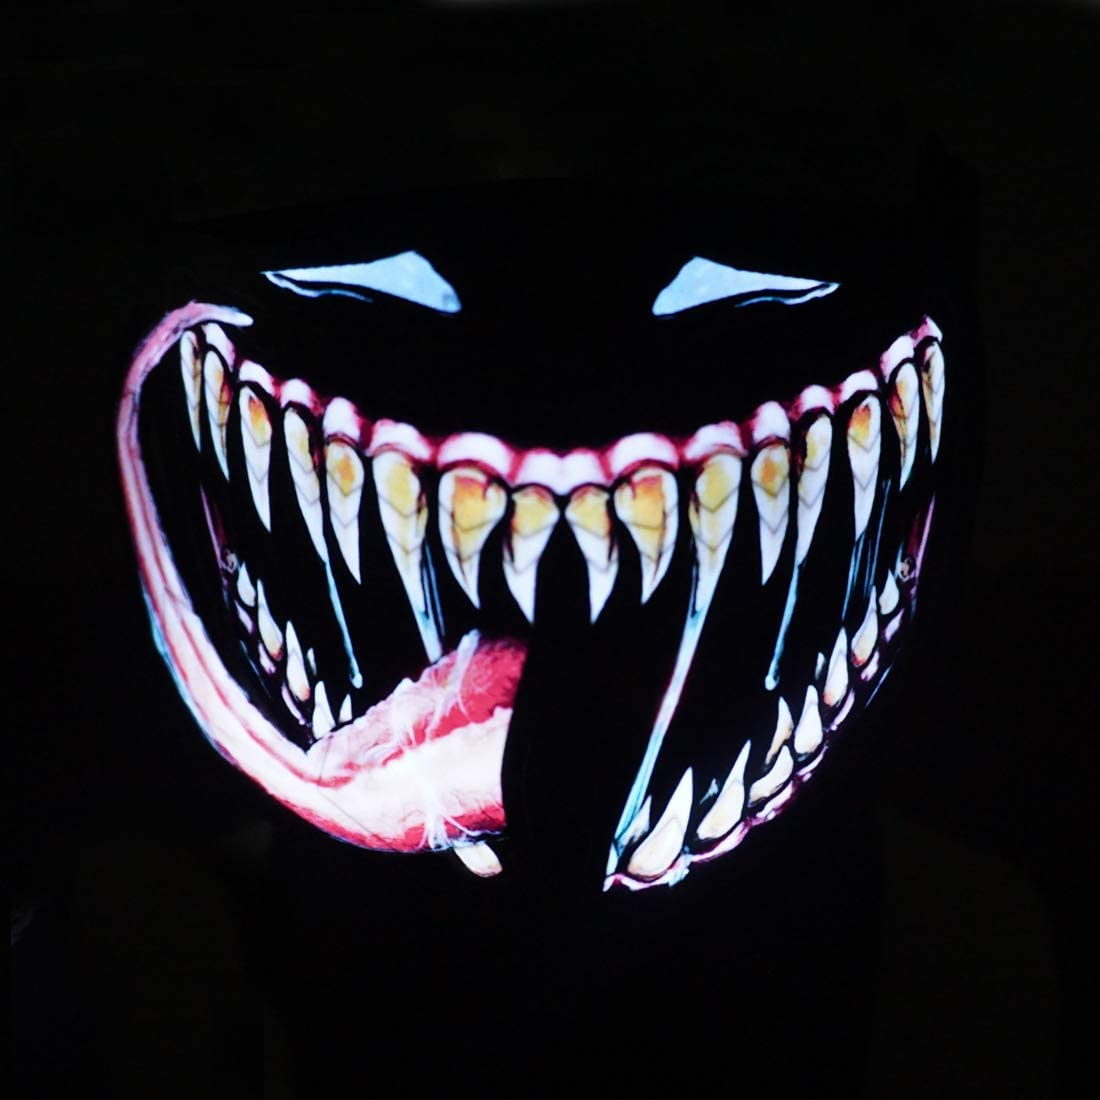 LED Mask Sound Reactive Light Up Mask for Party and Any Festival